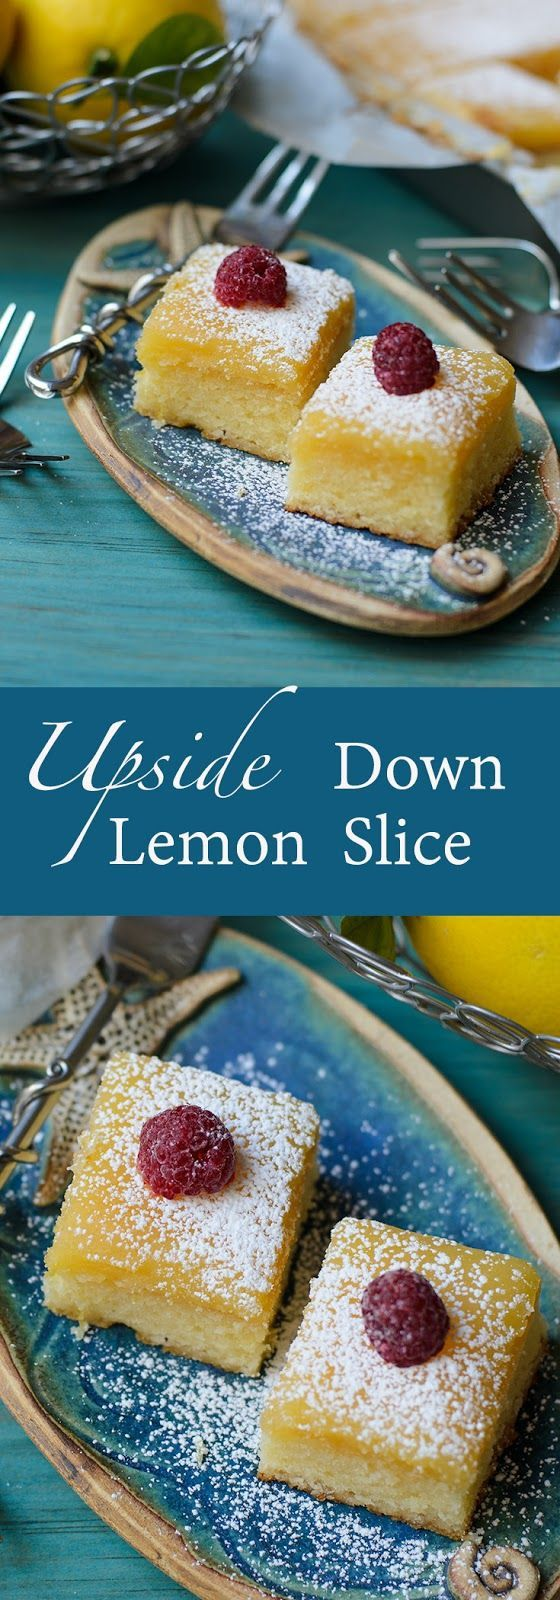 Upside down lemon slice ~ moist, moreish, perfect for afternoon tea with friends